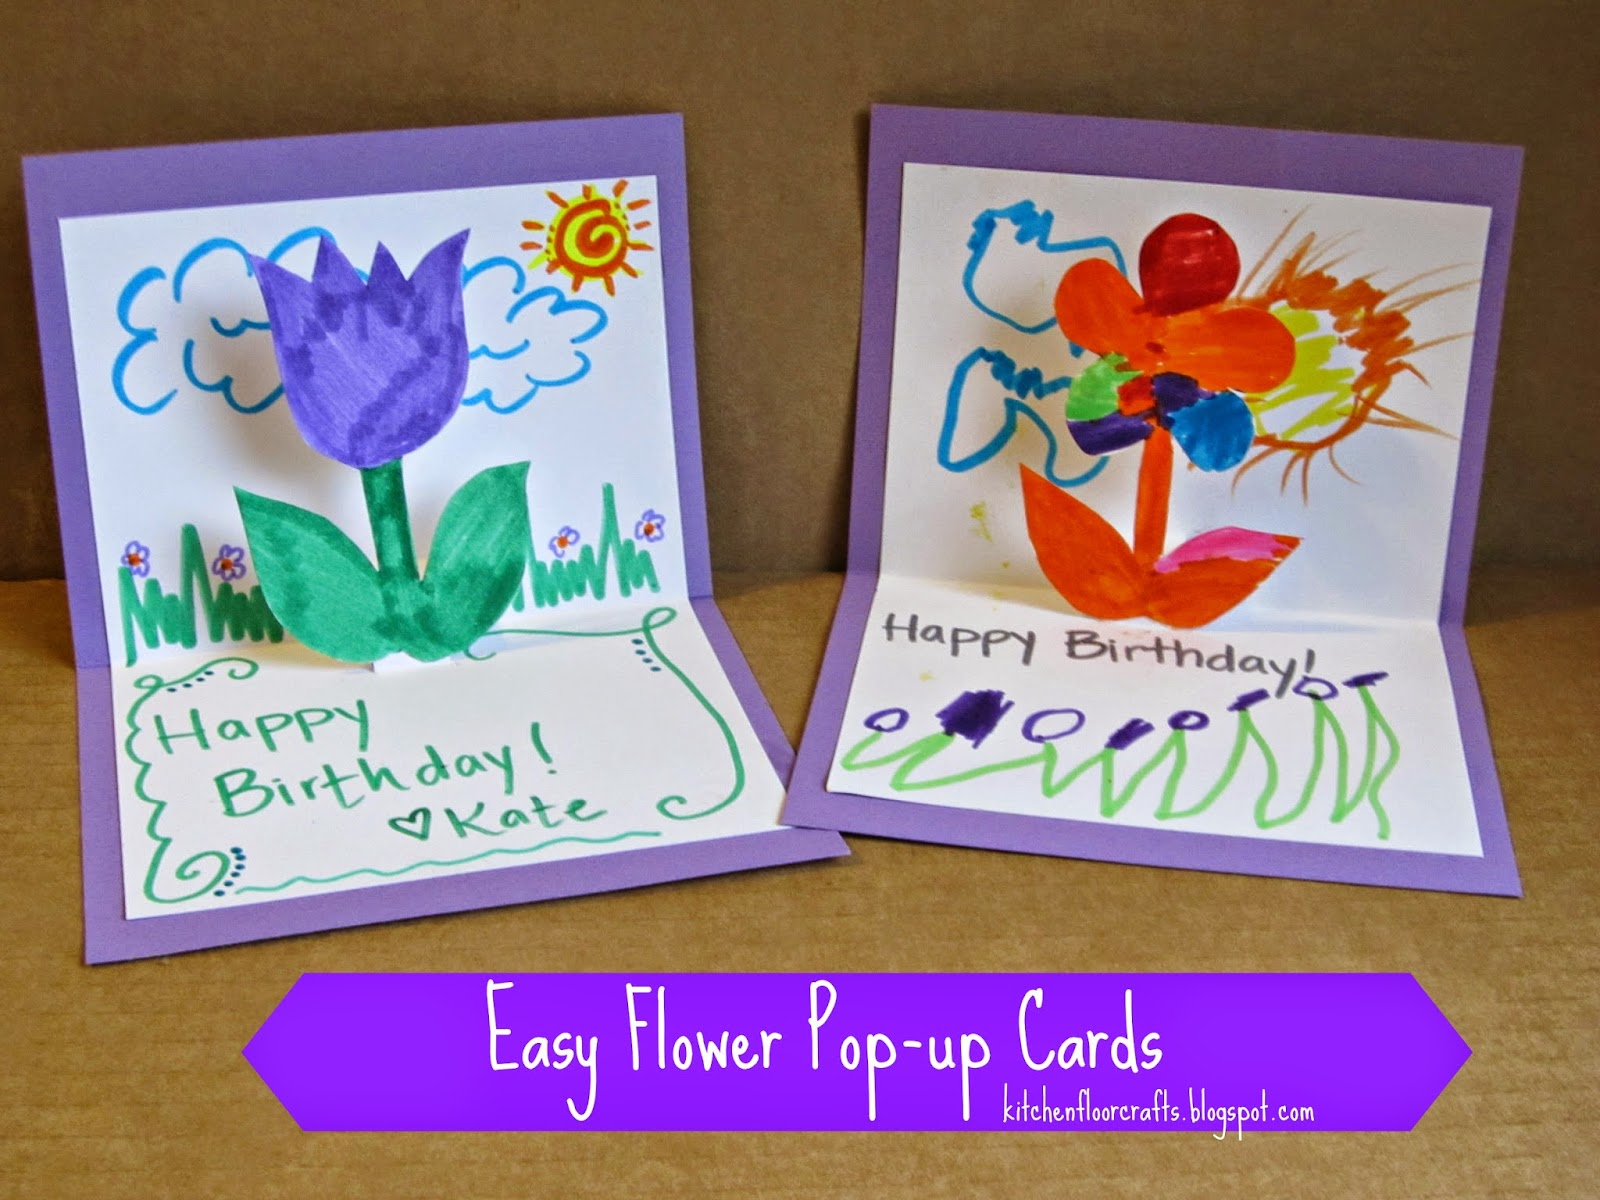 Kitchen floor crafts easy flower pop up cards for Pop up birthday cards for mom